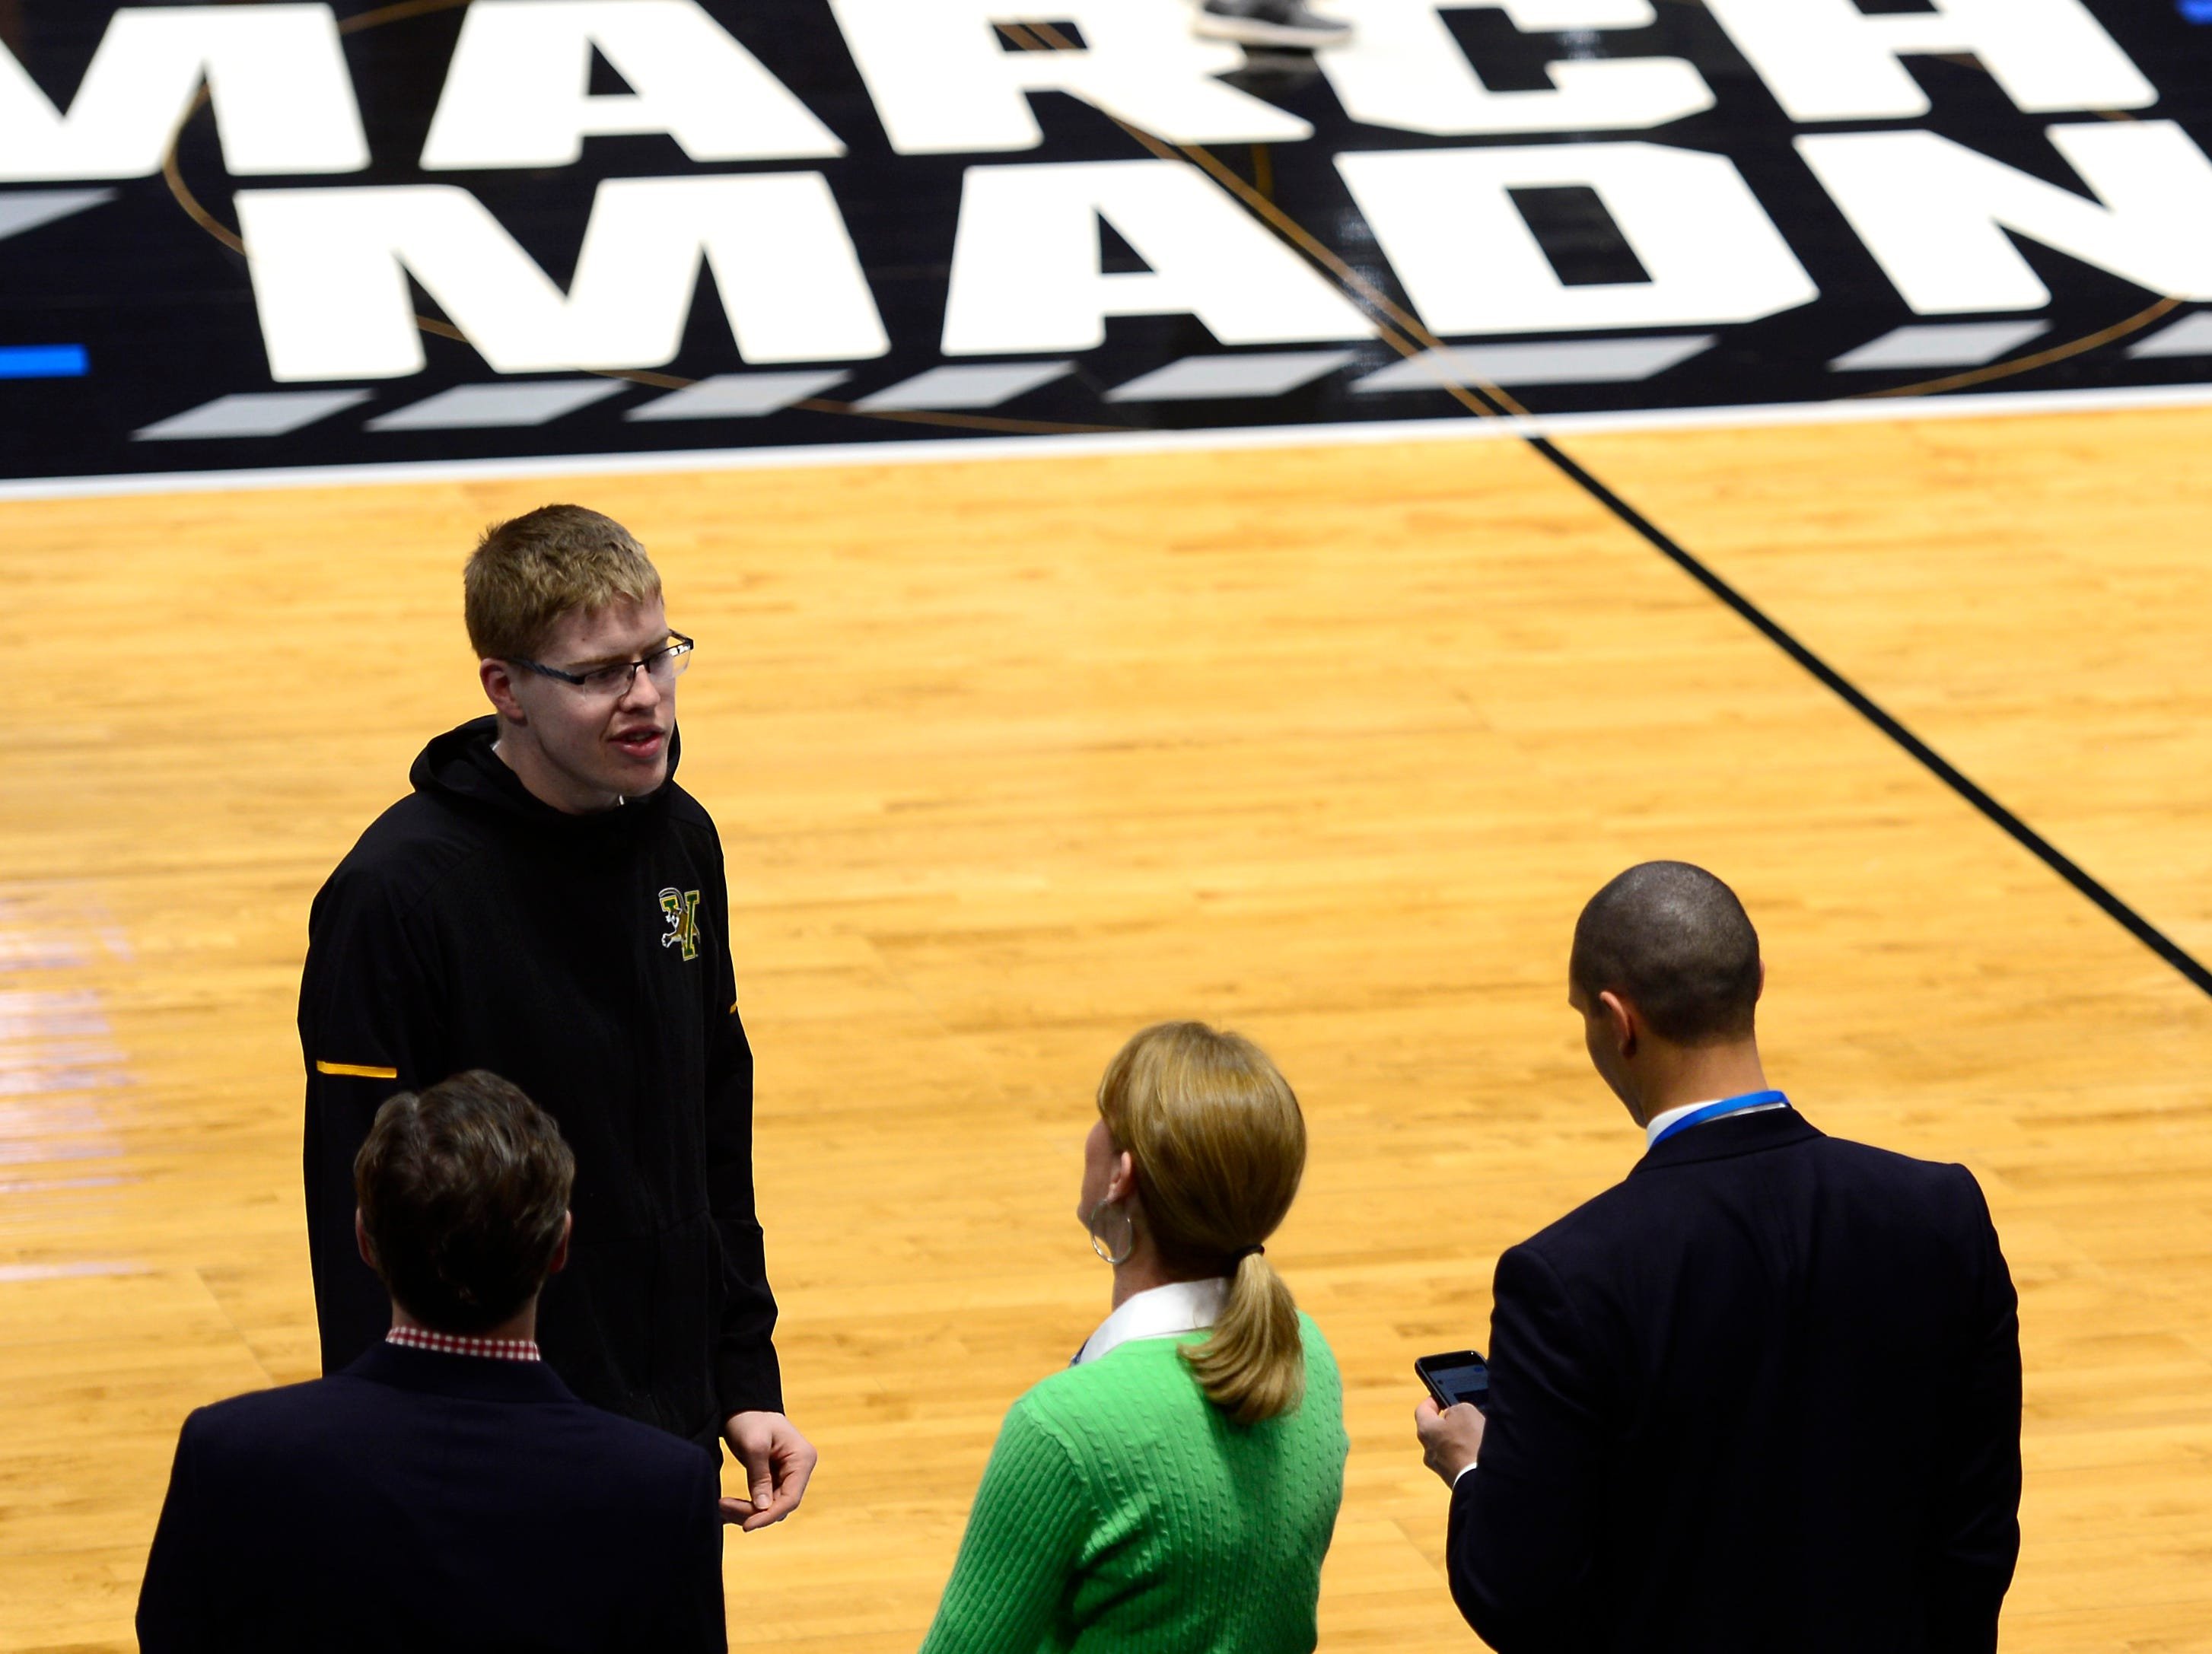 Vermont's Josh Speidel talks to onlookers at practice on Wednesday ahead of the Catamounts' NCAA tournament game at the XL Center in Hartford, Connecticut.